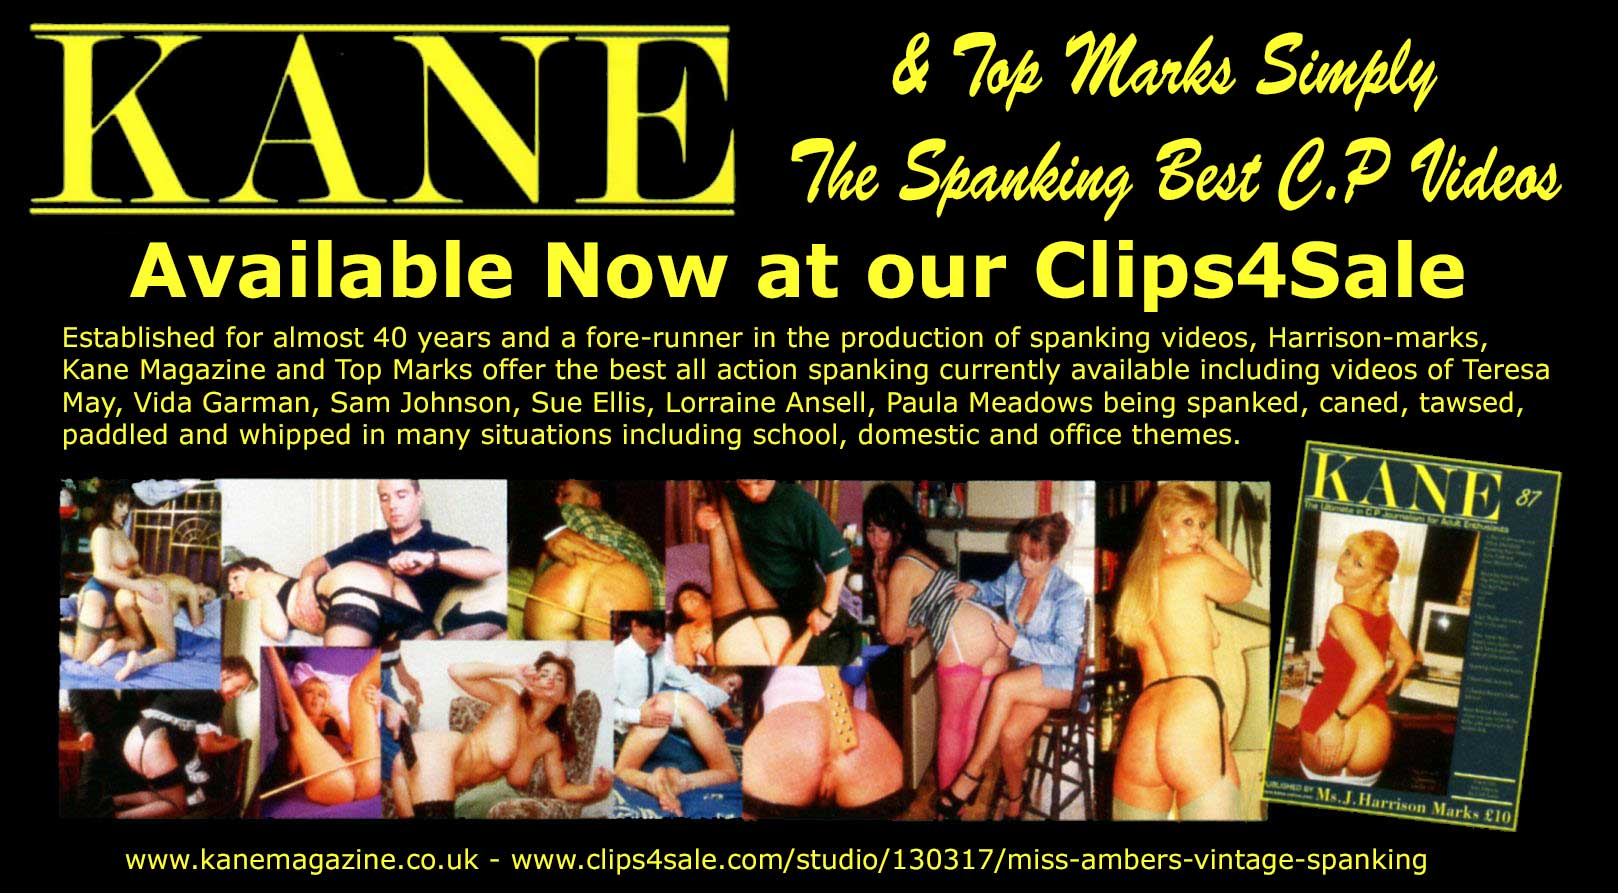 Kane and Top Marks spanking videos at Clips for Sale